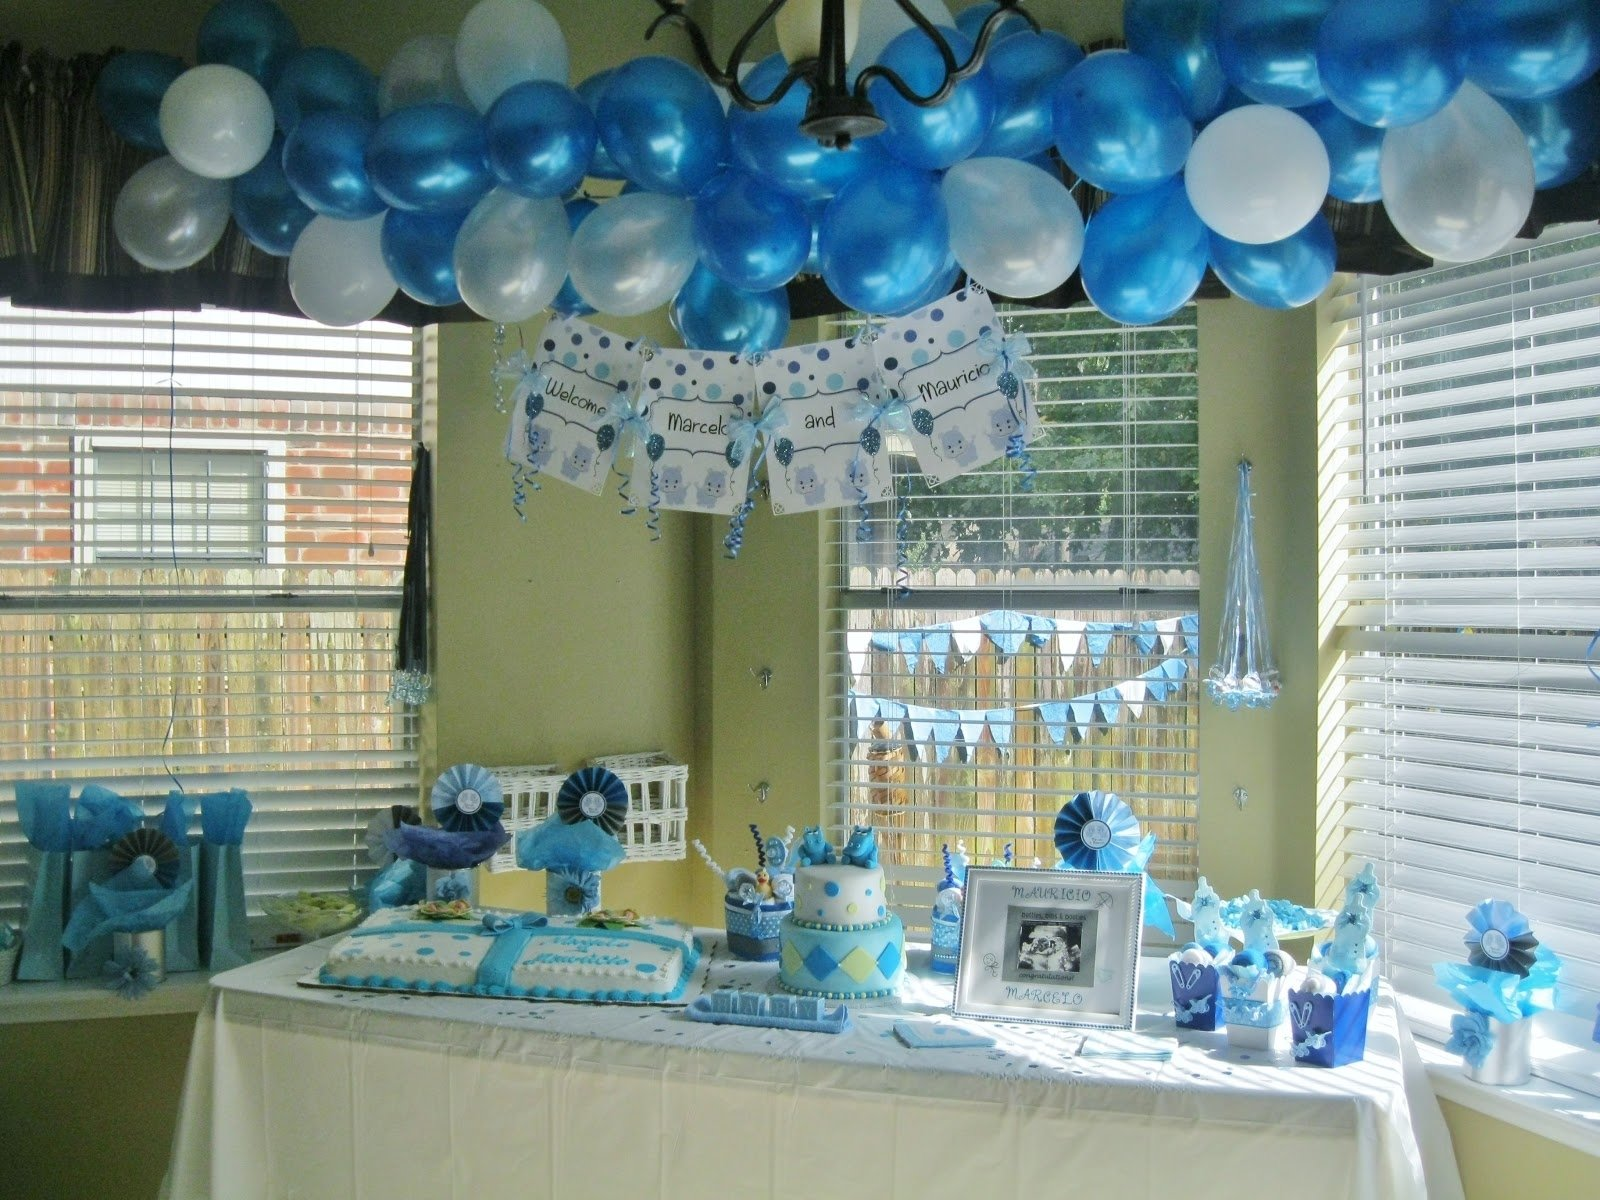 10 Trendy Baby Shower Decorations Ideas For Boys cute unique baby shower centerpieces deboto home design unique 6 2020